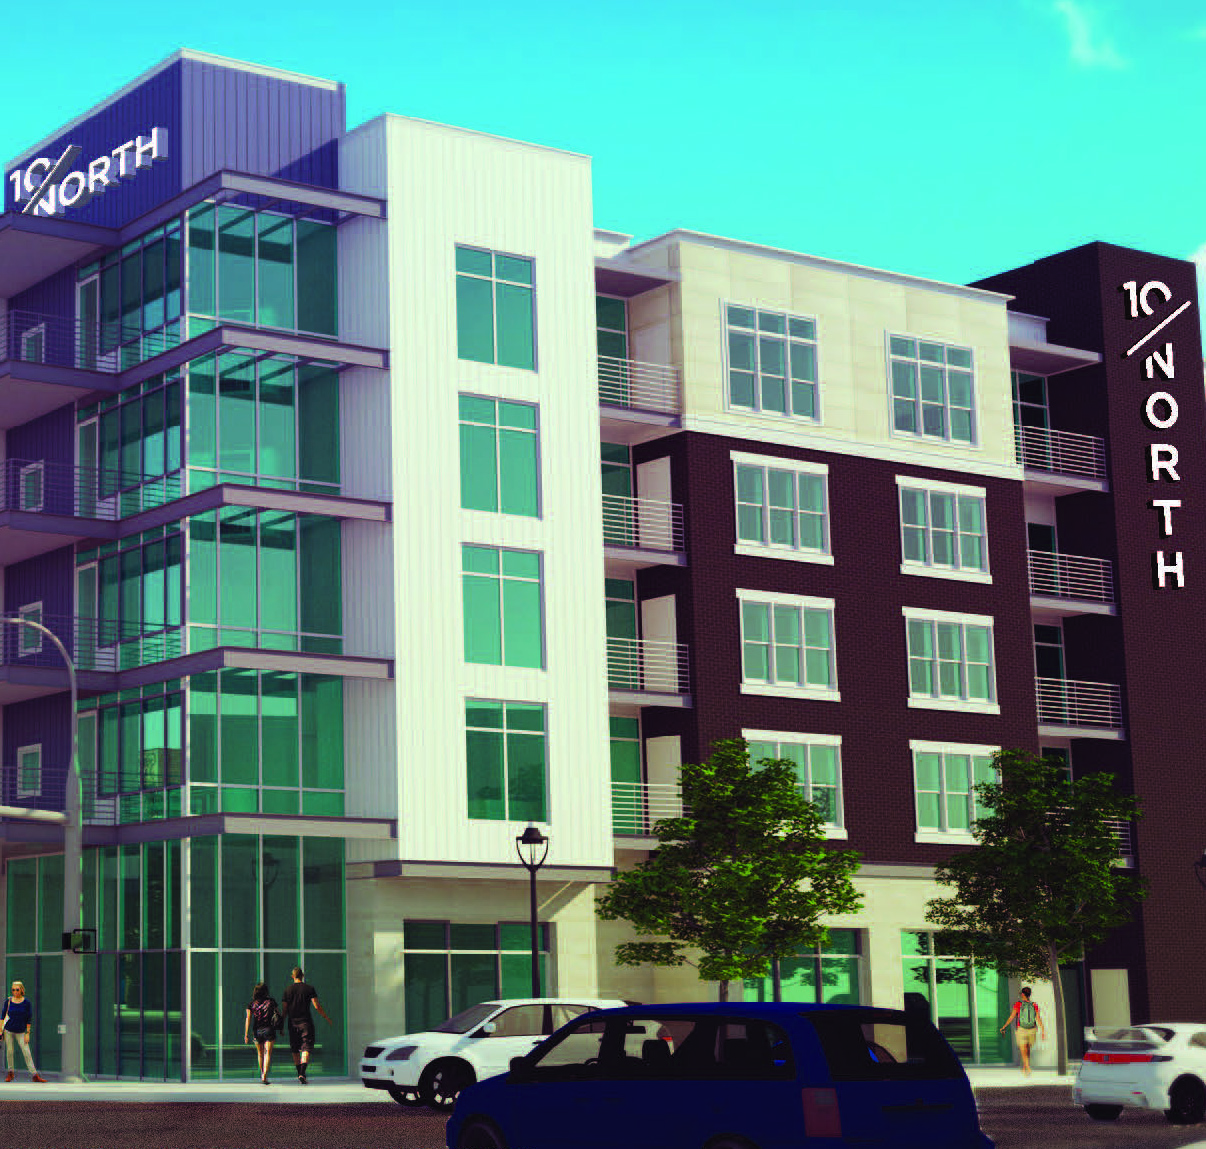 10/North Apartments rendering